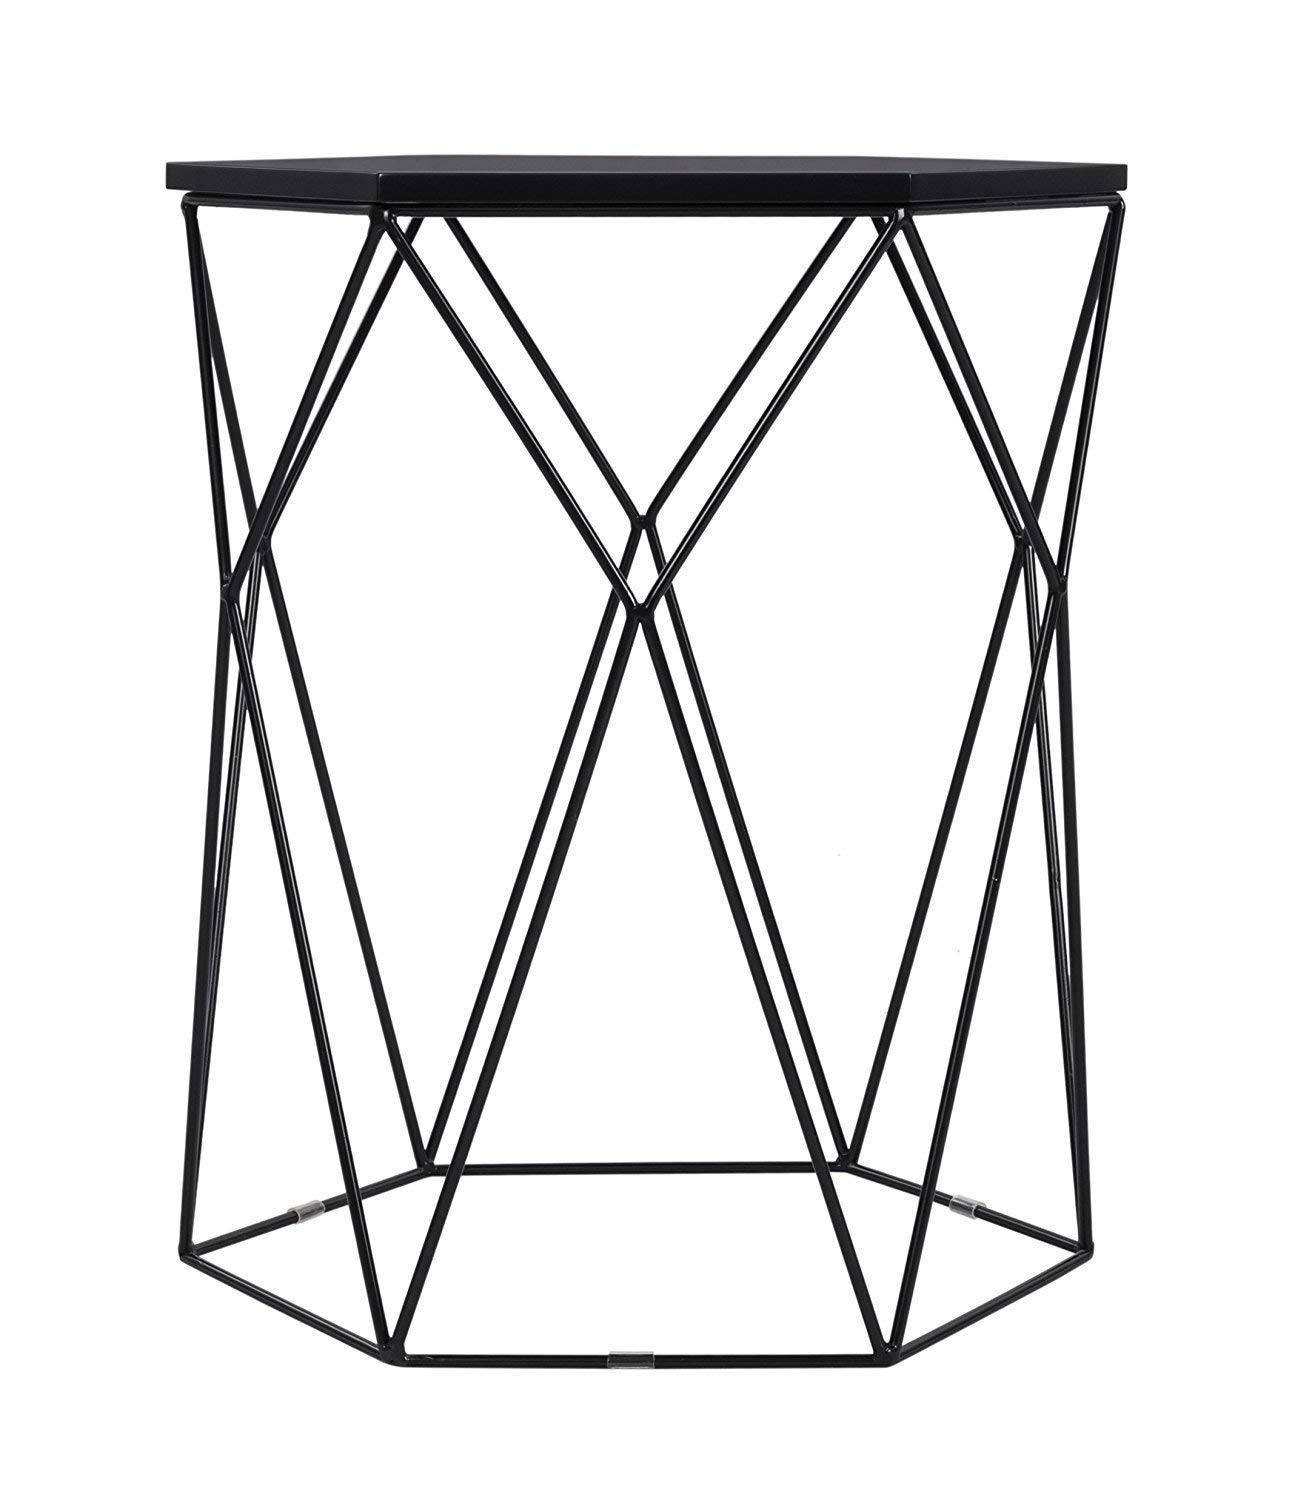 corner accent table find line triangle get quotations indoor multi function study computer home office desk bedroom living room modern style oversized outdoor umbrellas drum bench